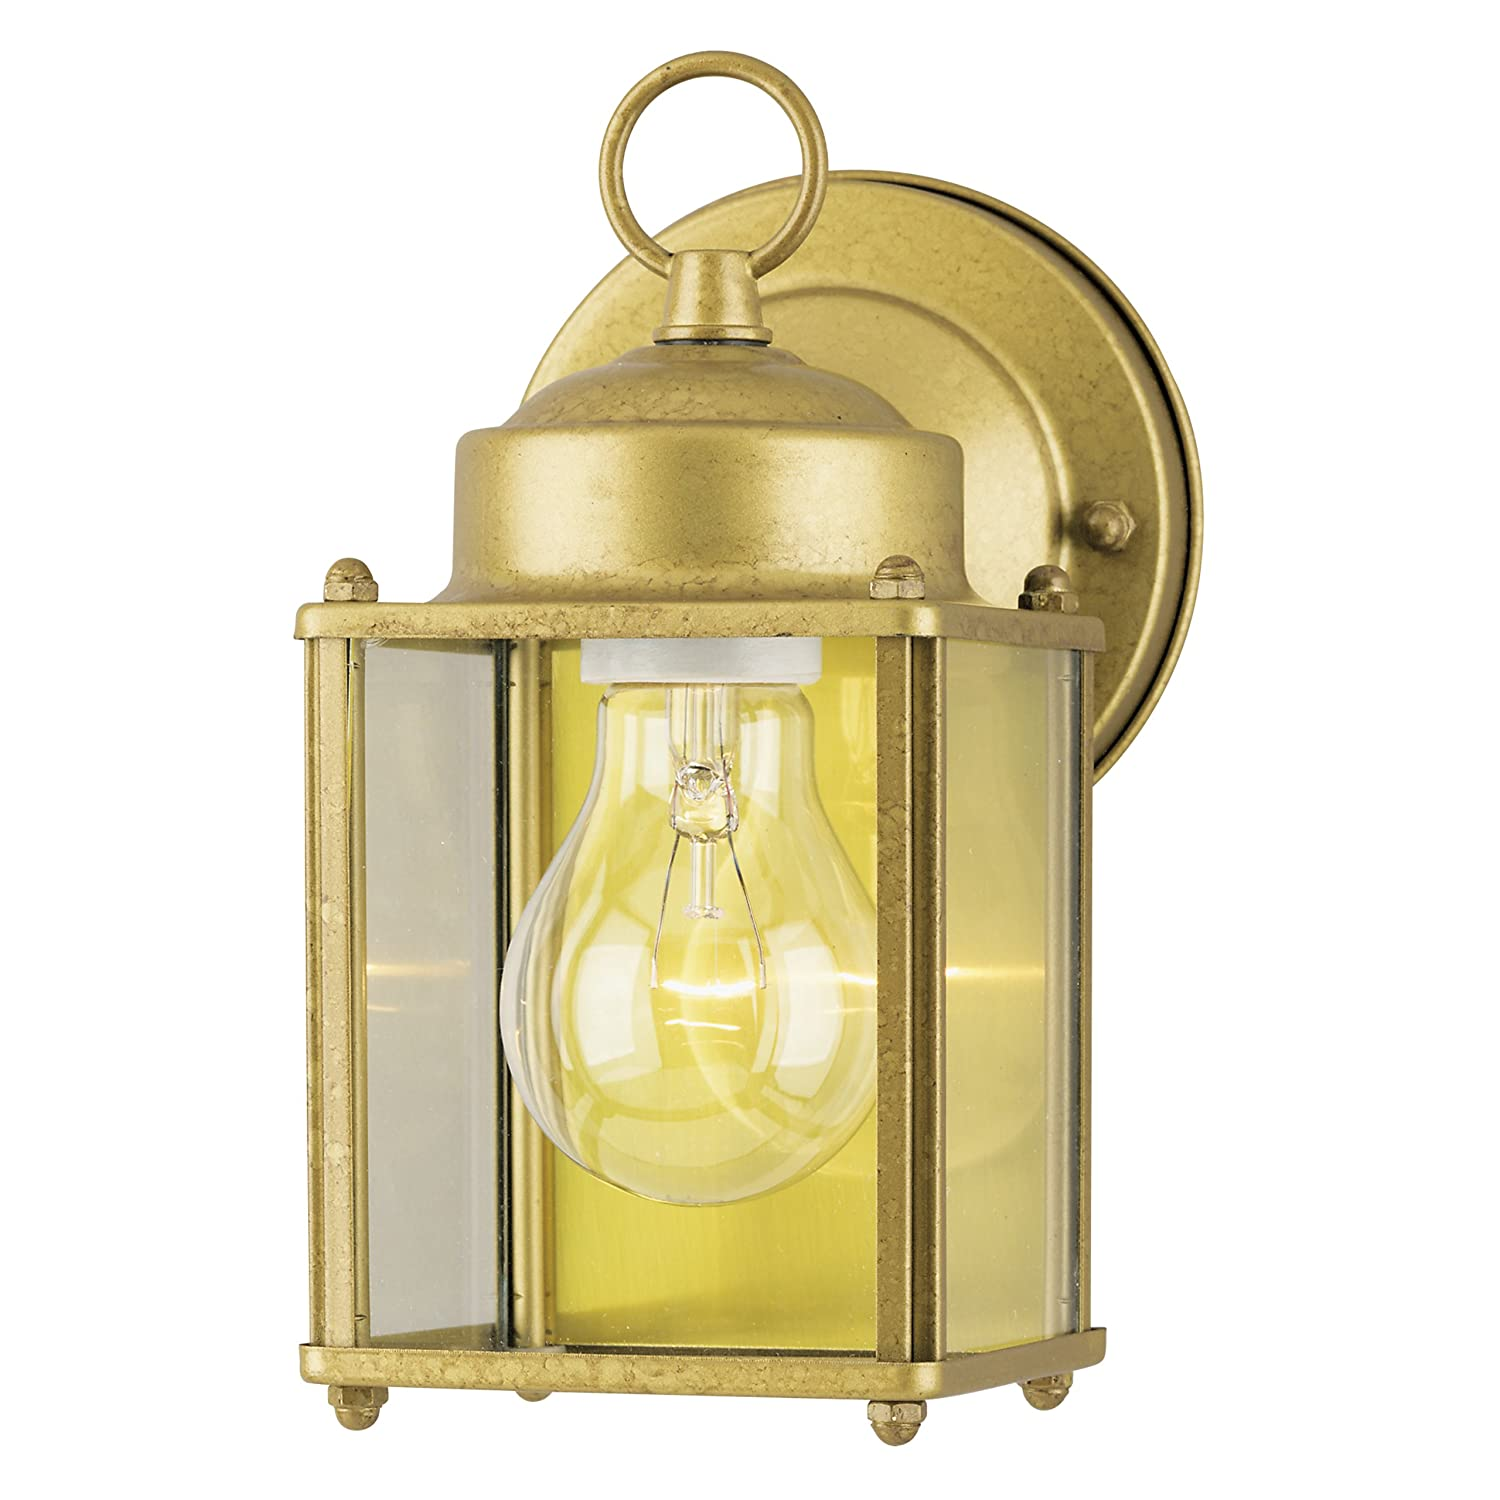 Goldenrod Finish on Steel with Clear Glass Panels Westinghouse 6693800 One-Light Exterior Wall Lantern